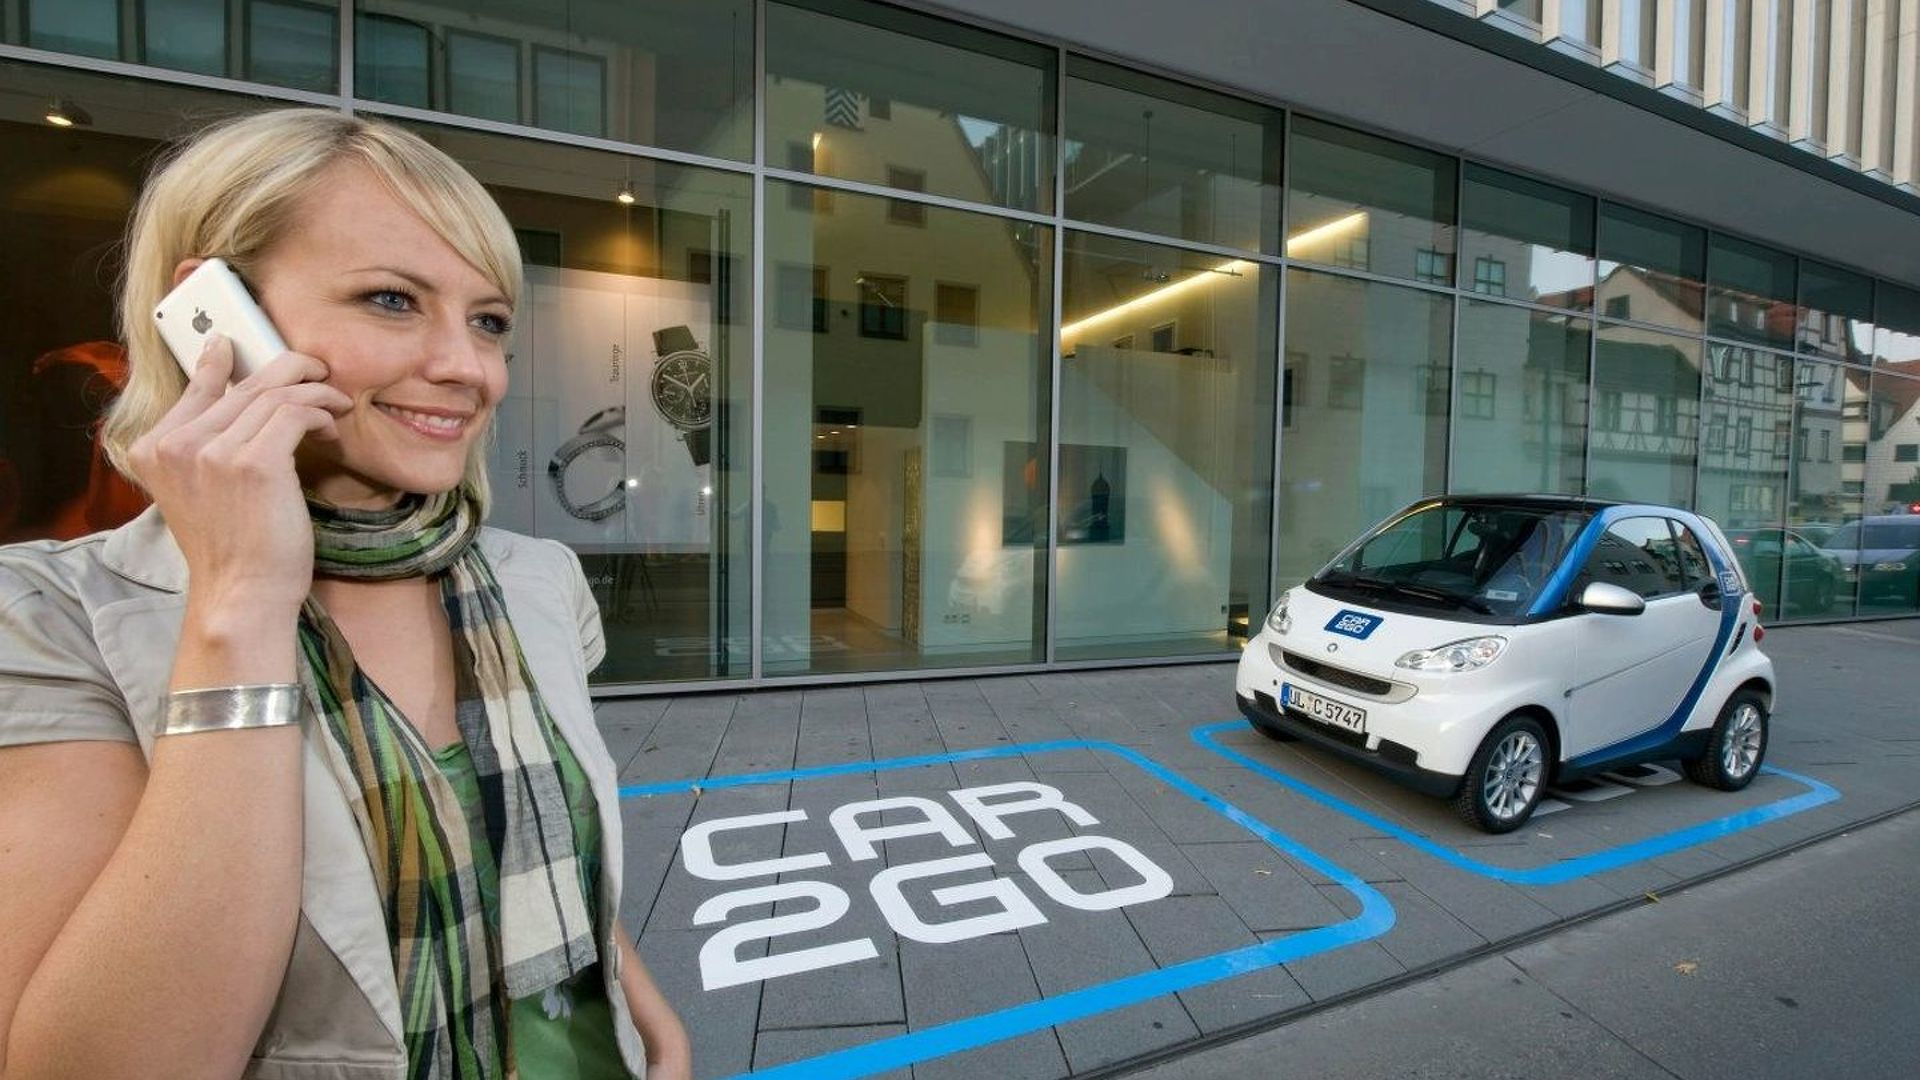 Smart car2go Mobile Rental Service Testing in Germany